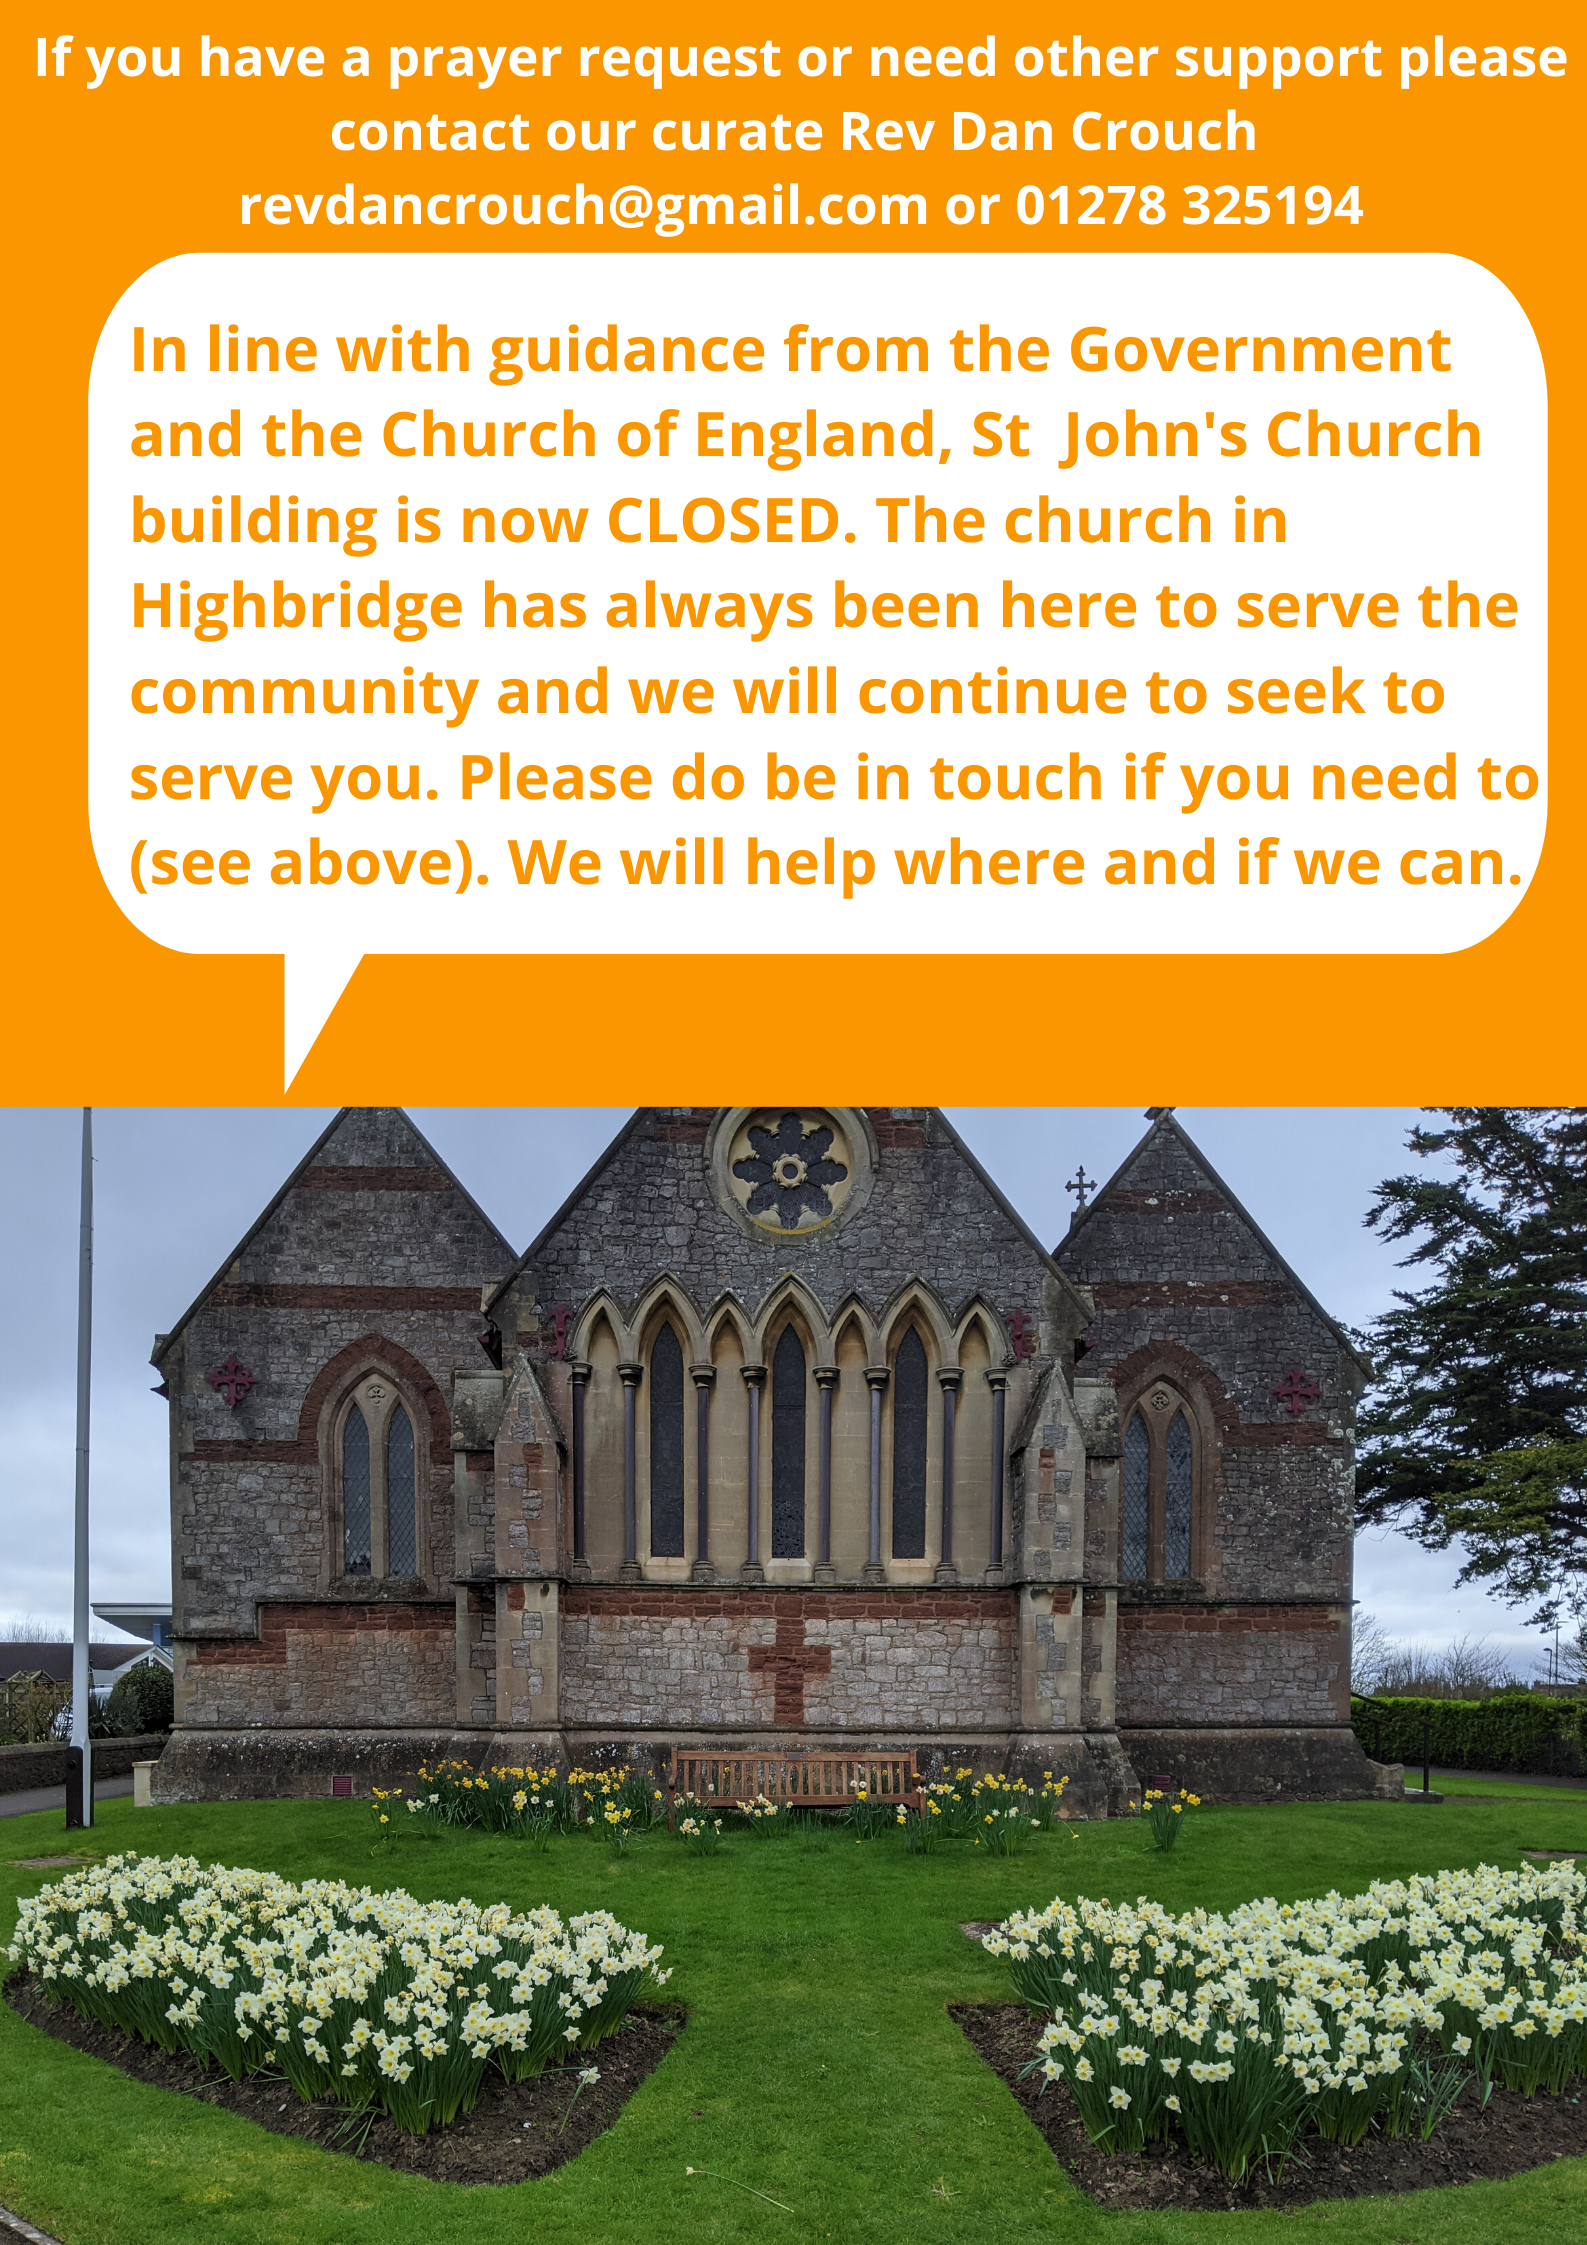 An open note to the community of Highbridge